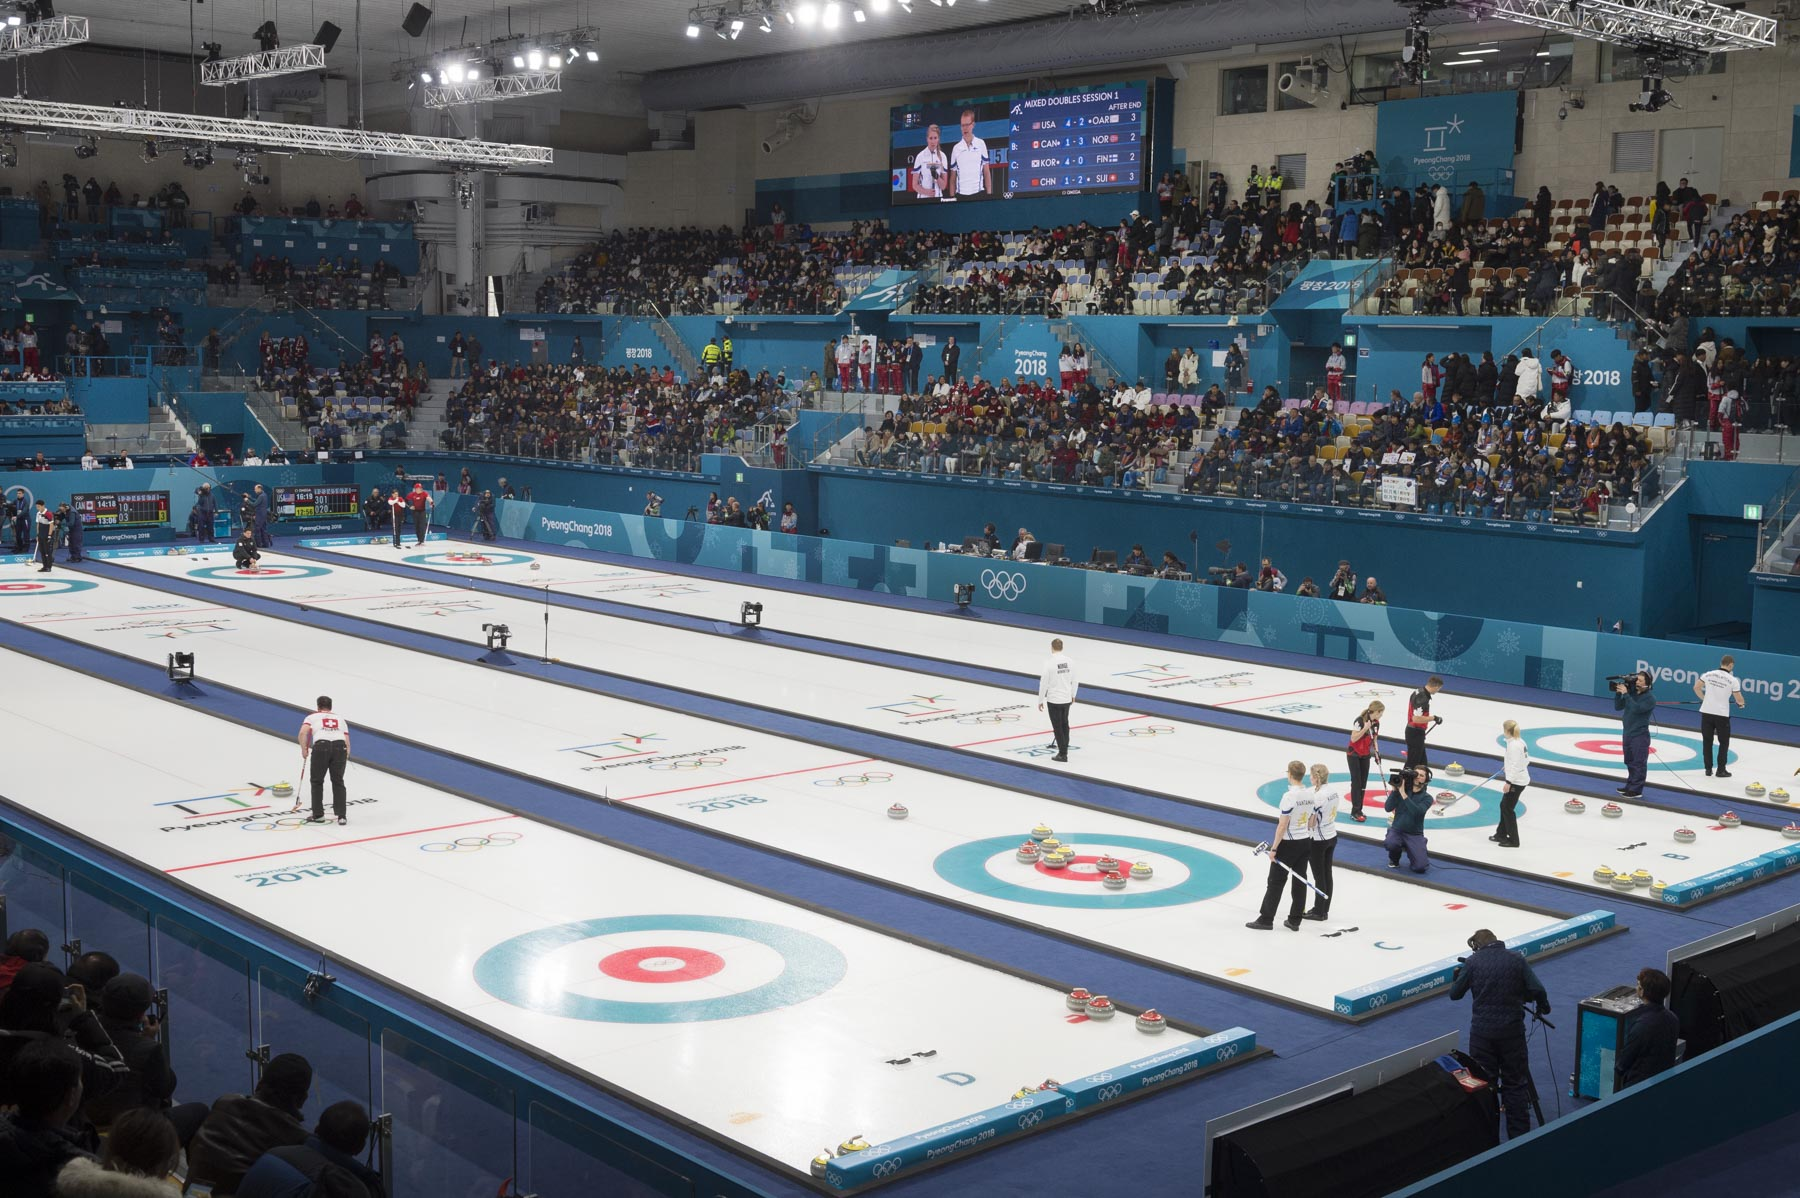 The curling event took place at the Gangneung Curling Centre.